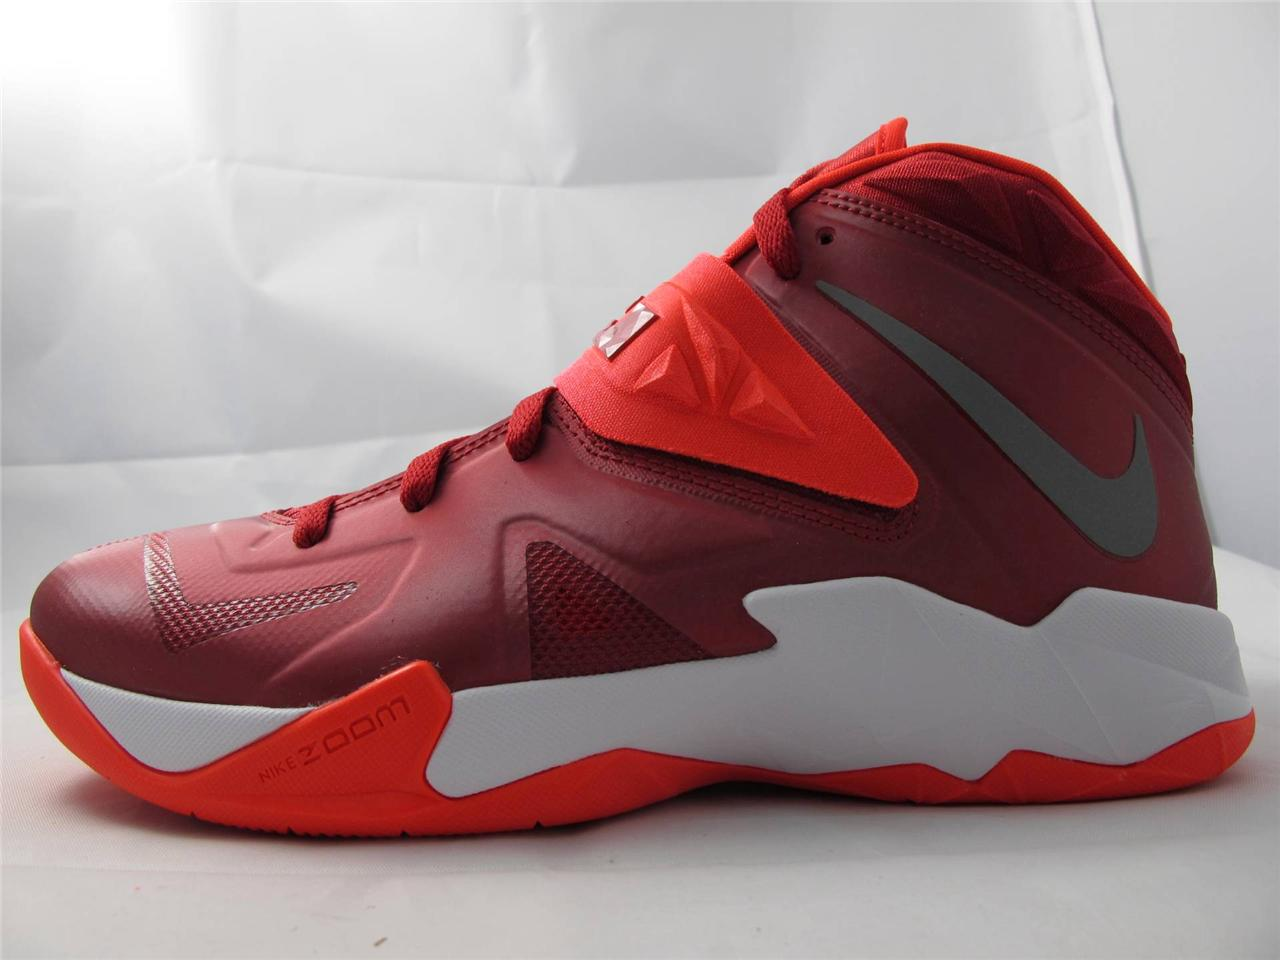 Lebron soldier 7 black and red